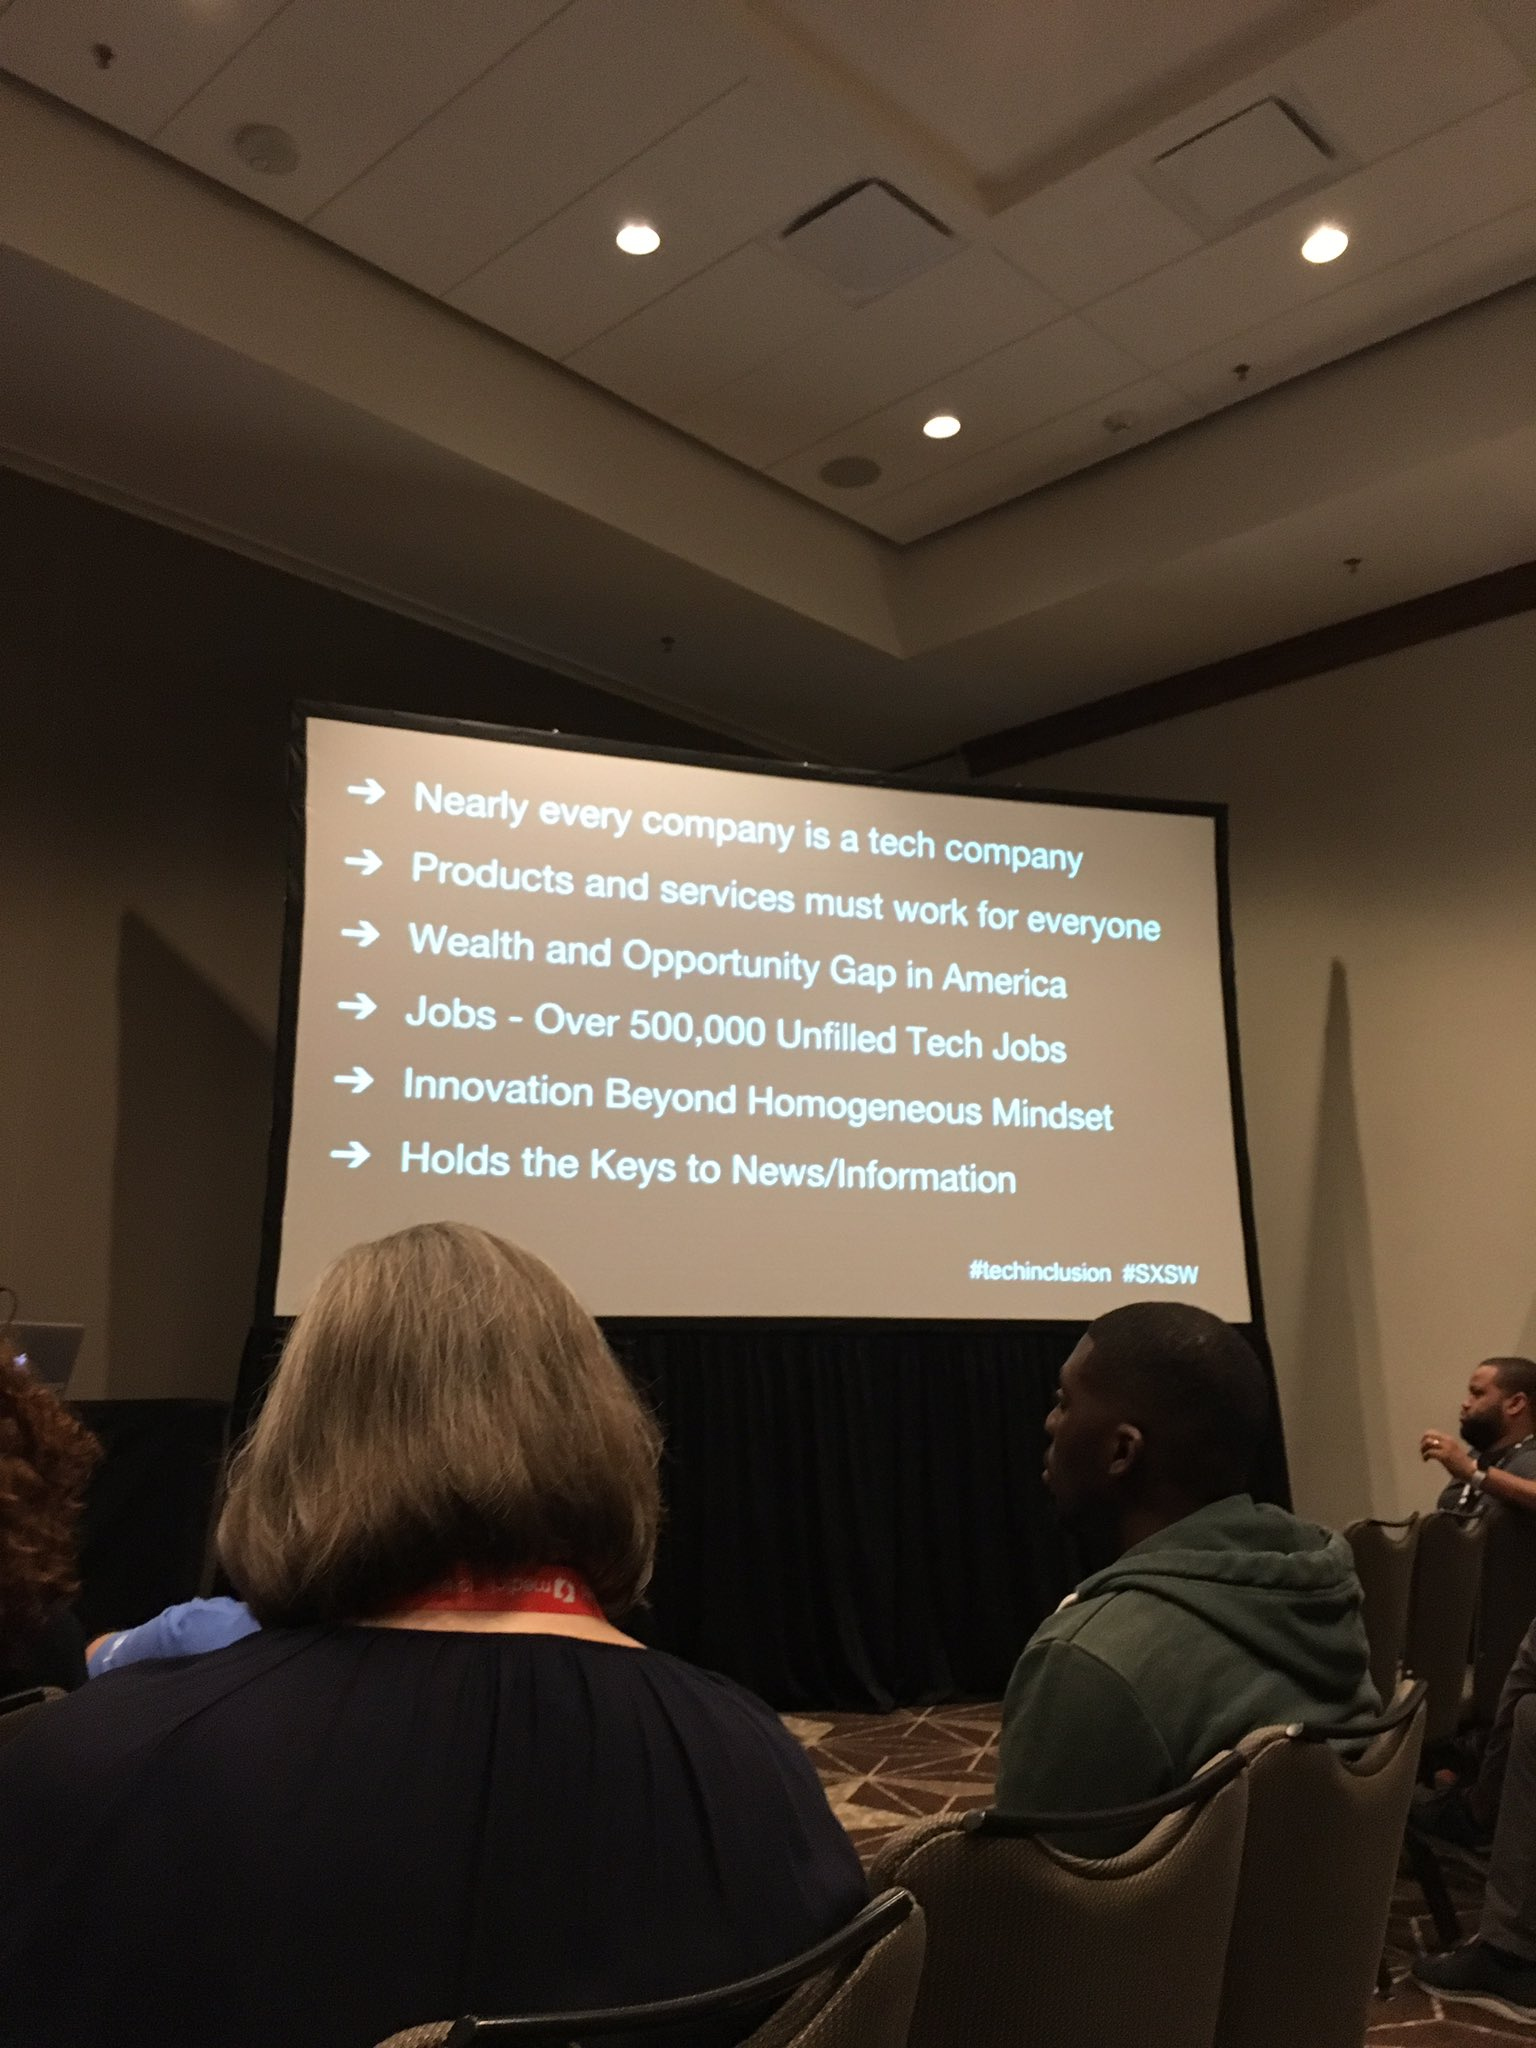 Tech has the potential to reach too many people, to be developed and implemented by a homogenous group. #sxsw #techinclusion https://t.co/25UtoTiNOW